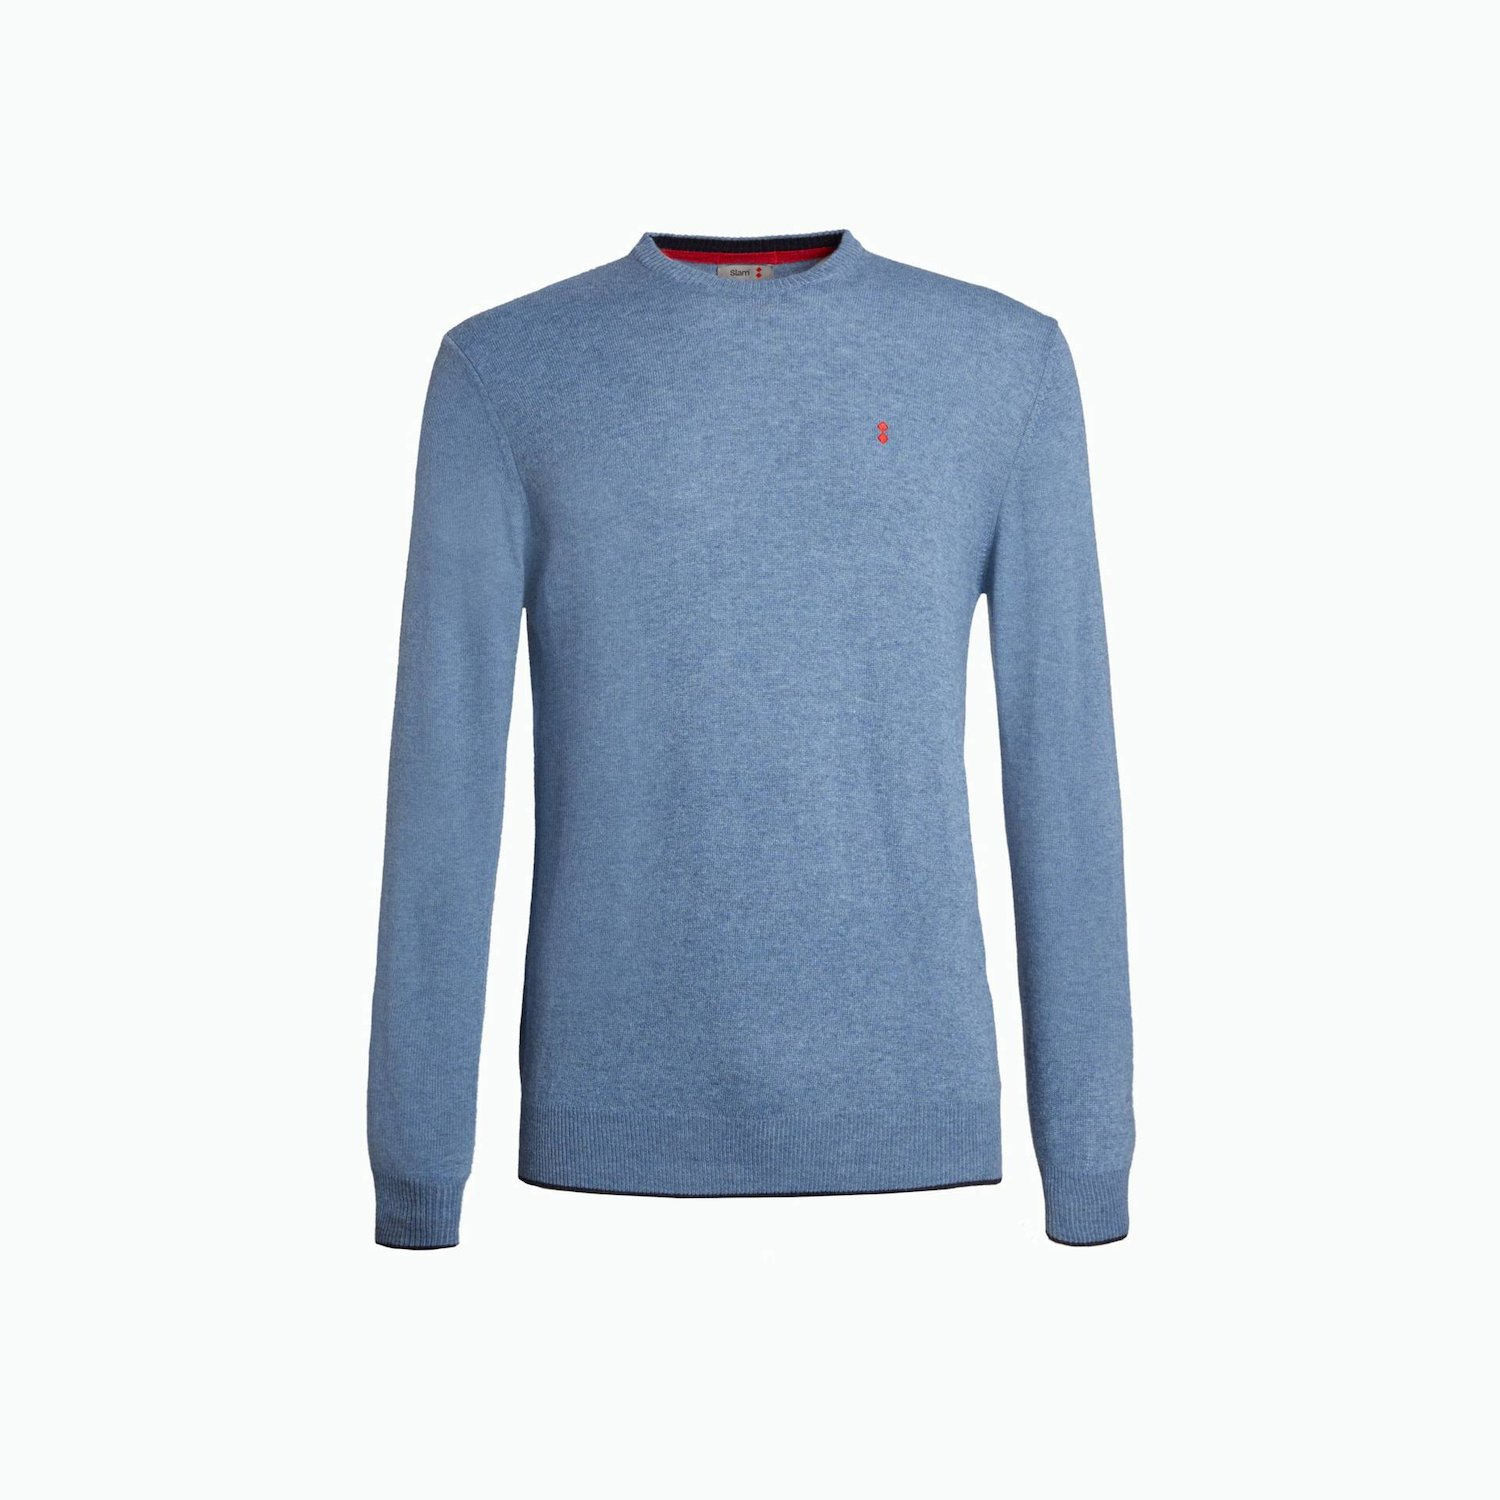 B132 sweater - Light Blue